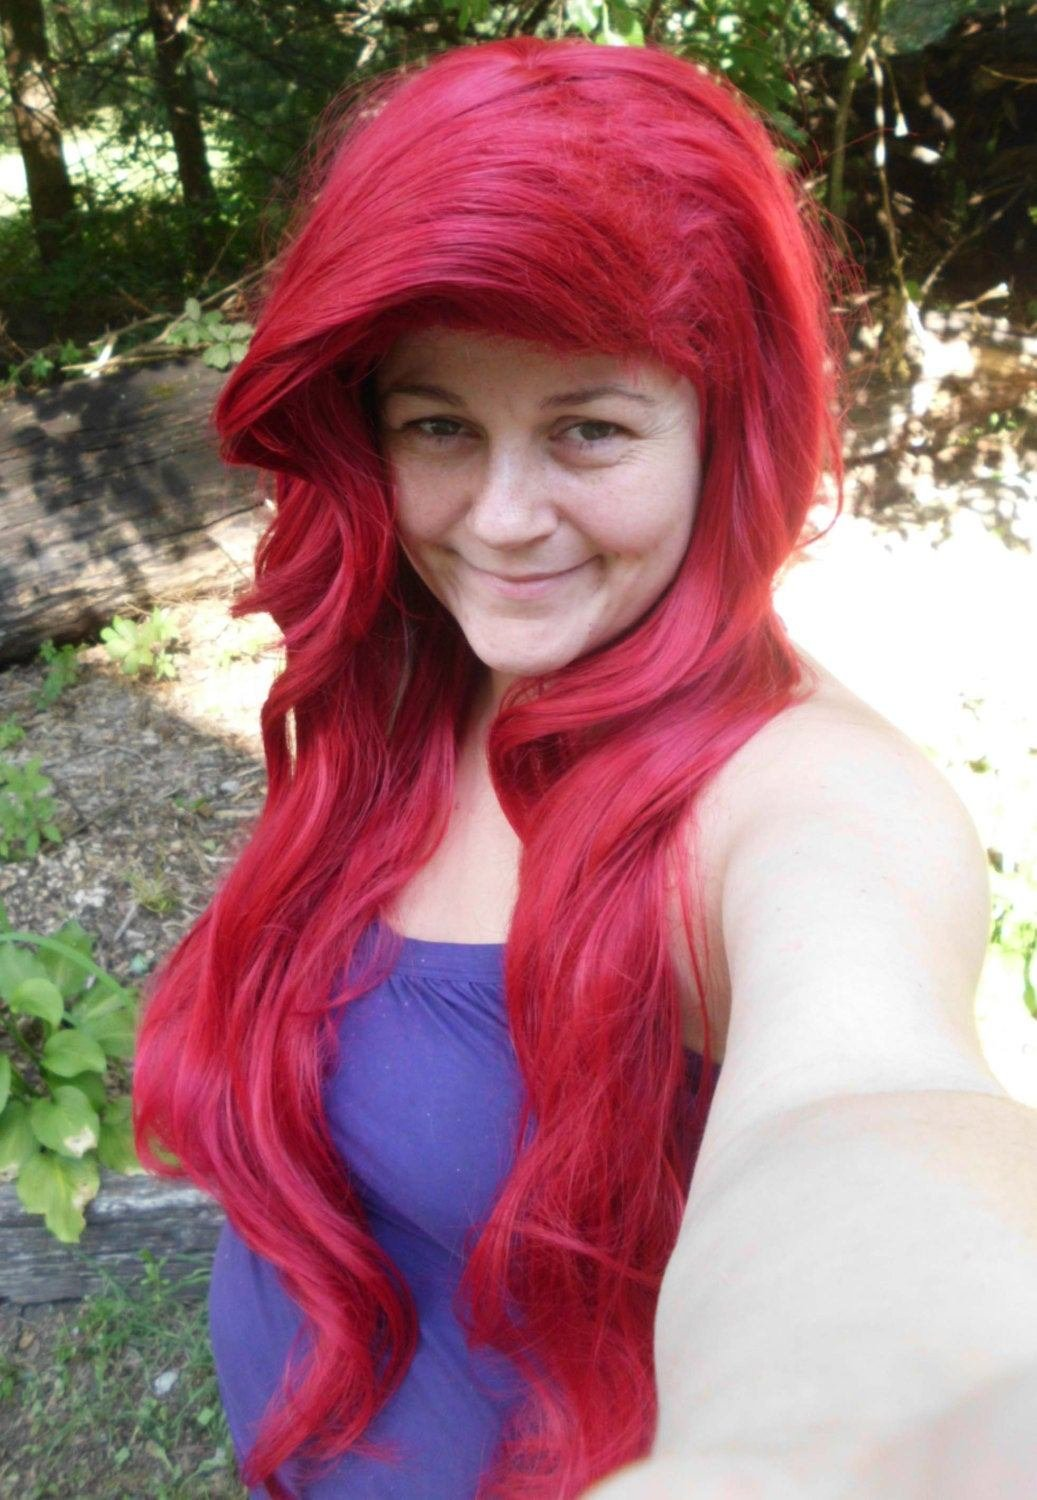 The Best Ariel Wig Princess Wig Long Red Wig Mermaid Wig Cosplay Pictures